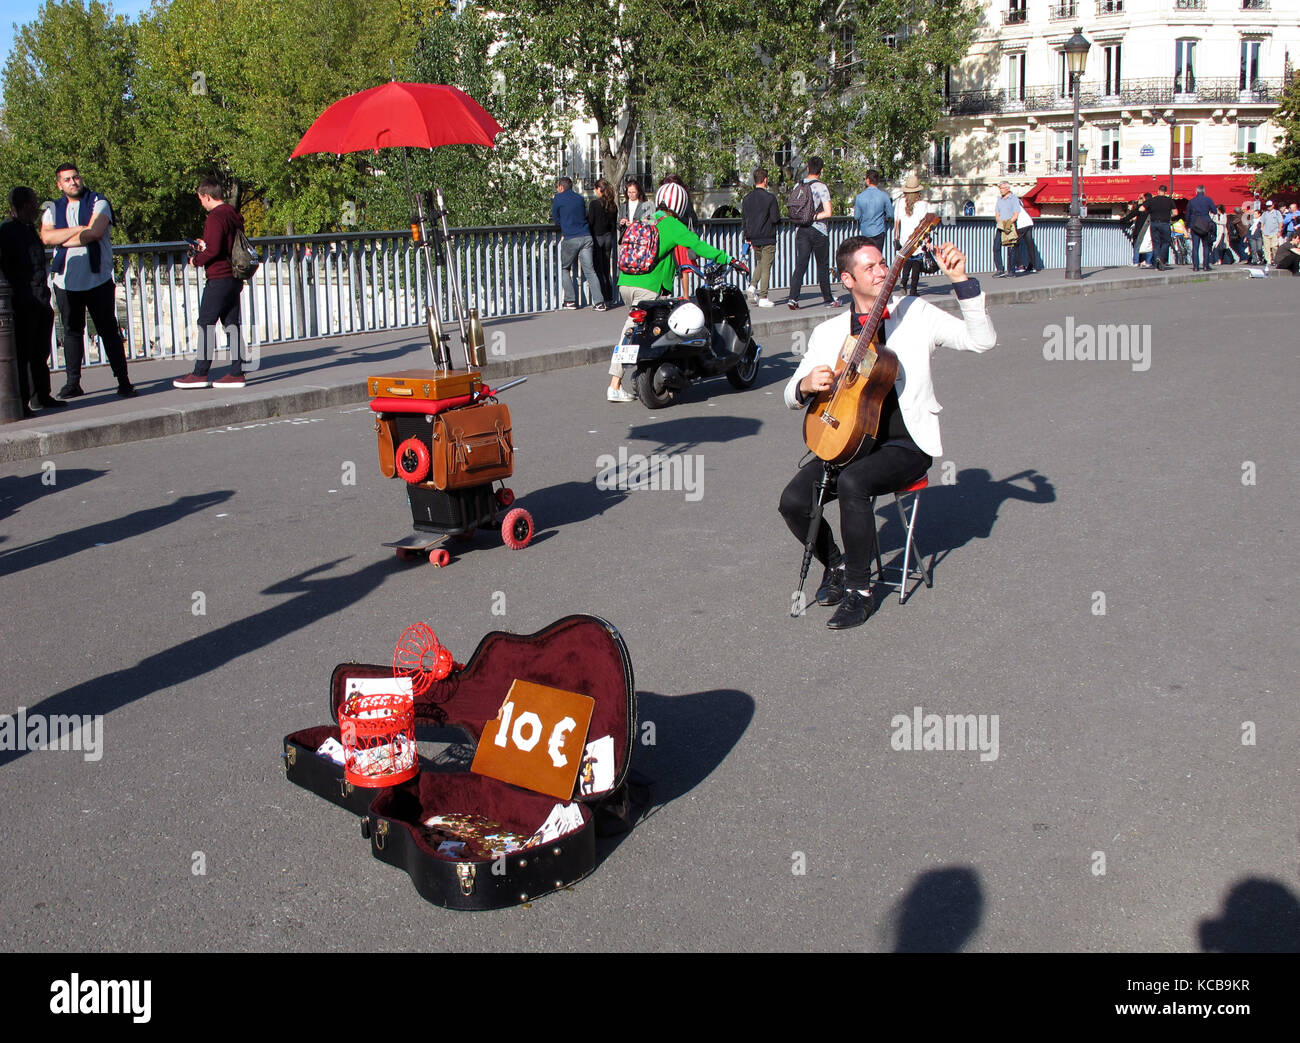 Tom War guitarist at Pont Saint-Louis, bridge, Seine river, Paris, France; Europe - Stock Image